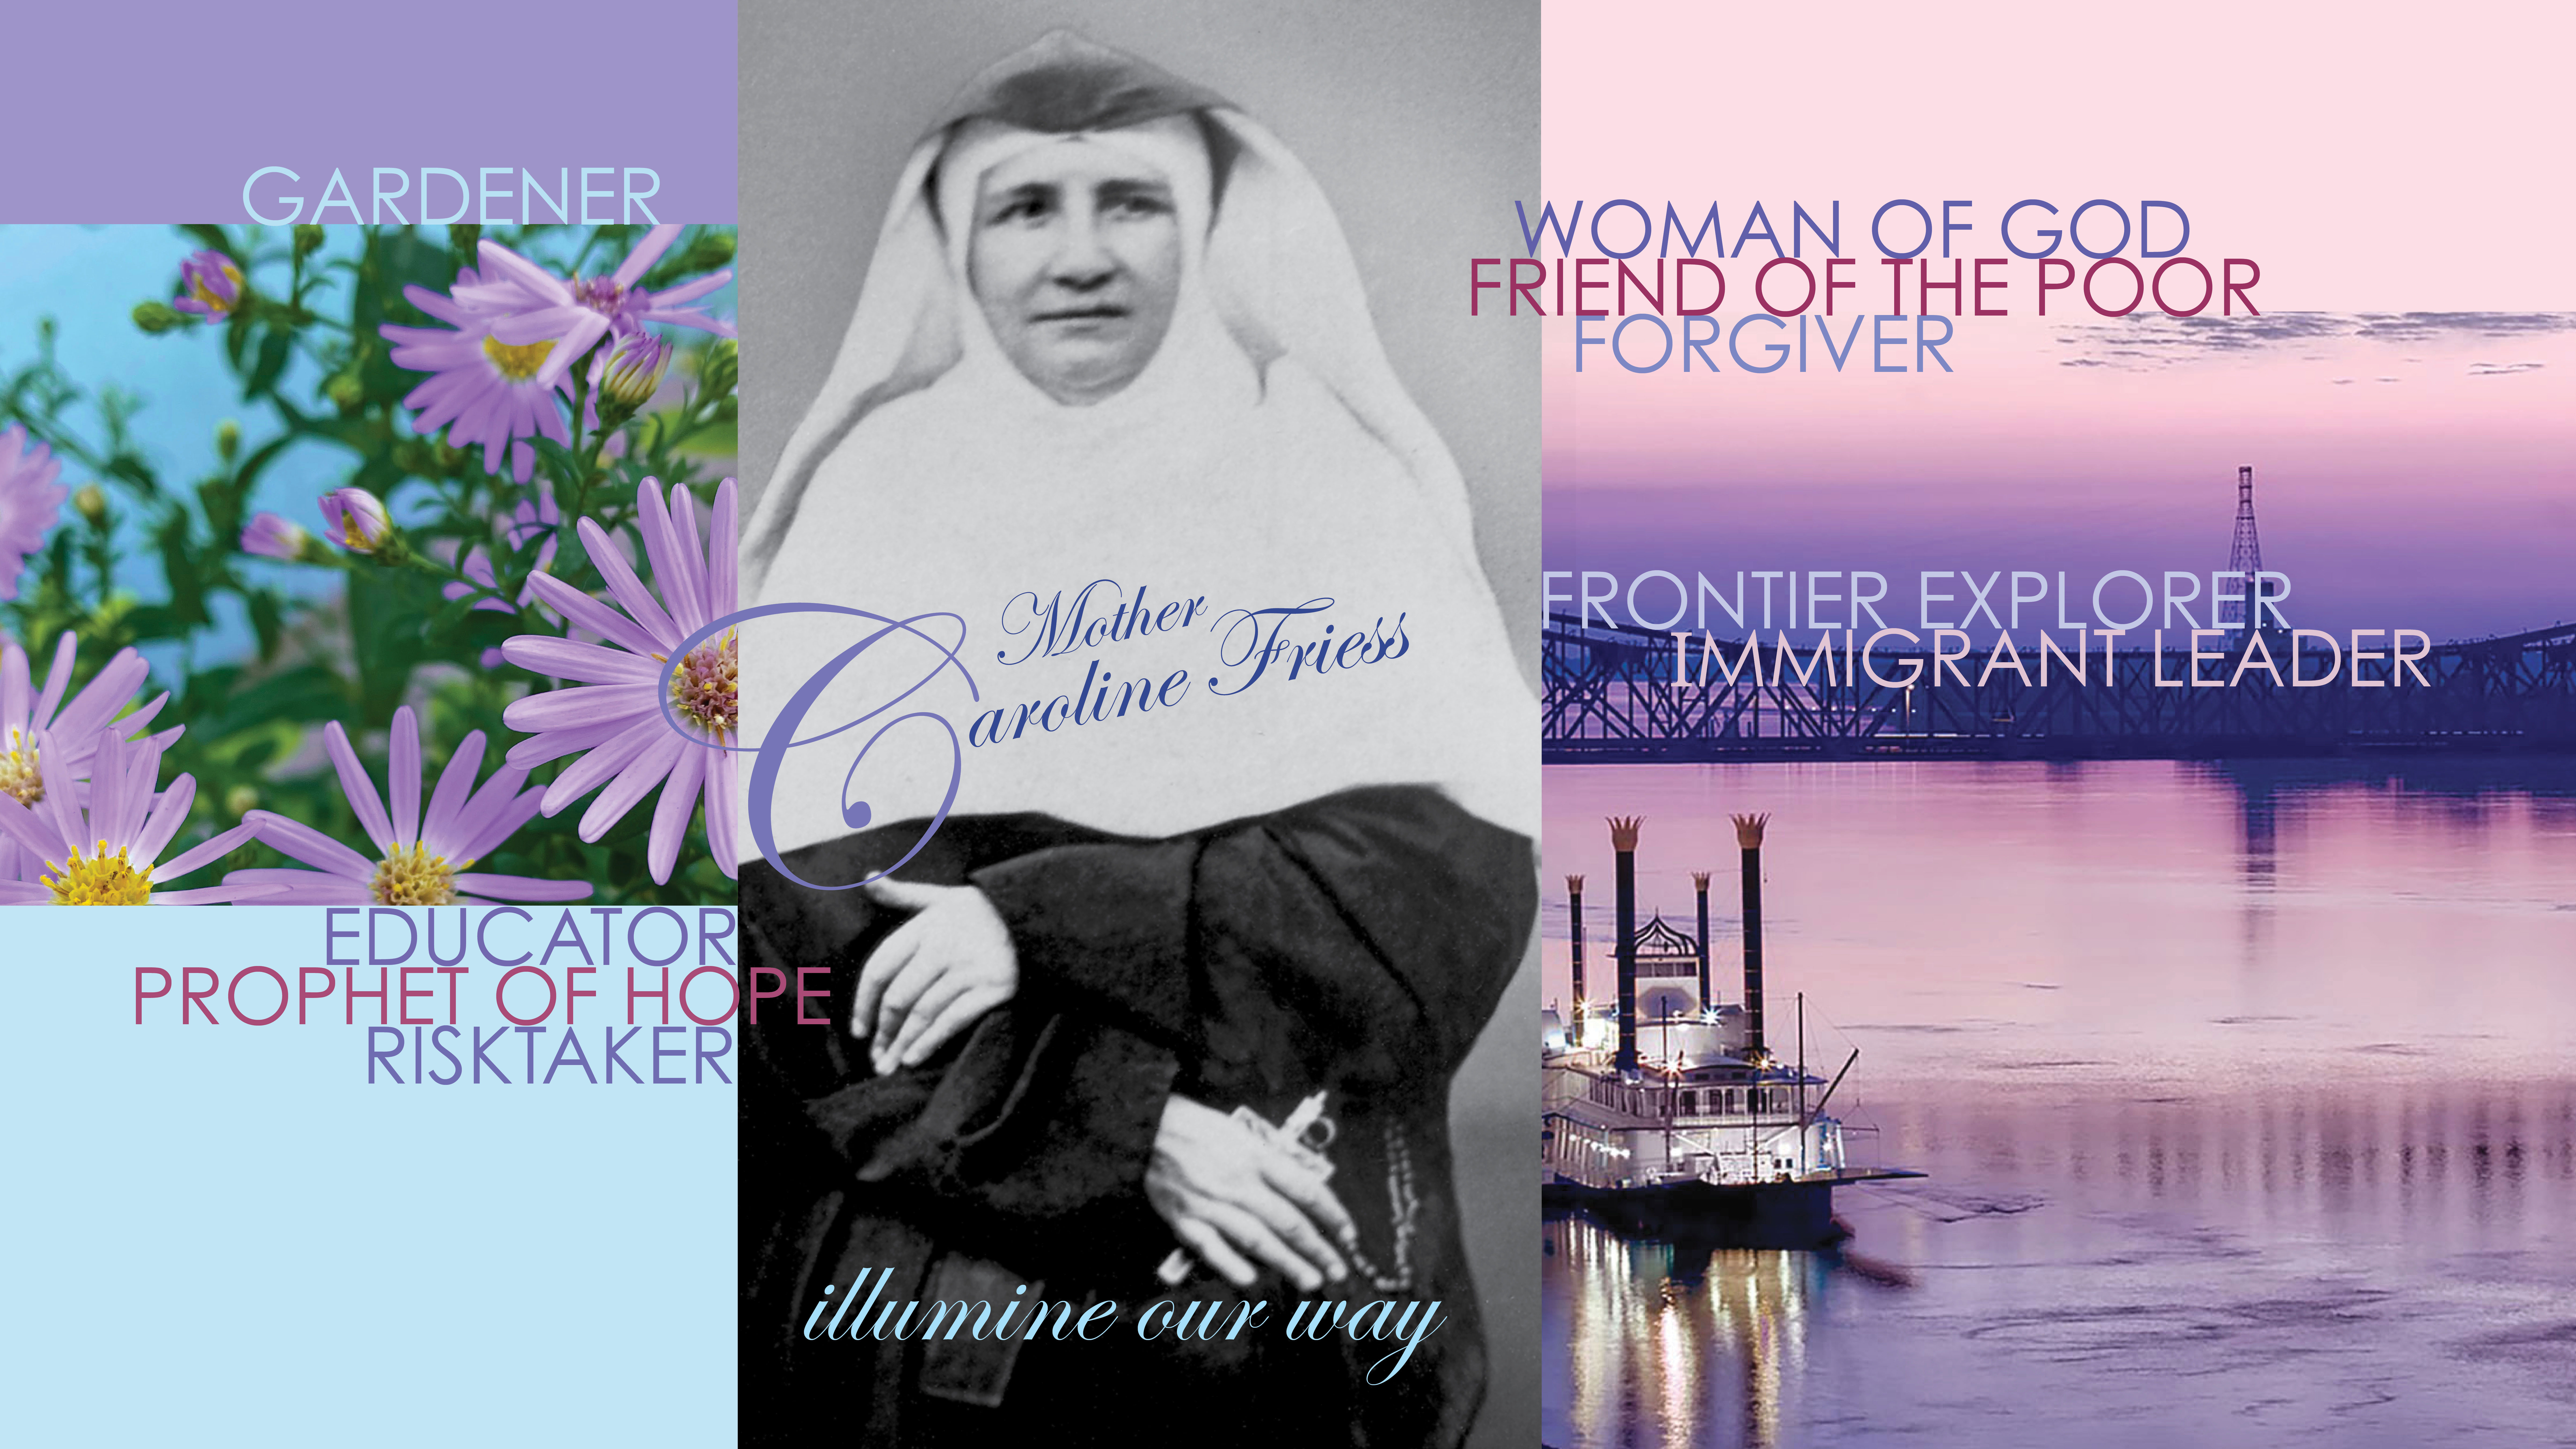 A collage of images with Mother Caroline Friess as the center picture. The words on the image provide glimpses of Mother Caroine's attributes.